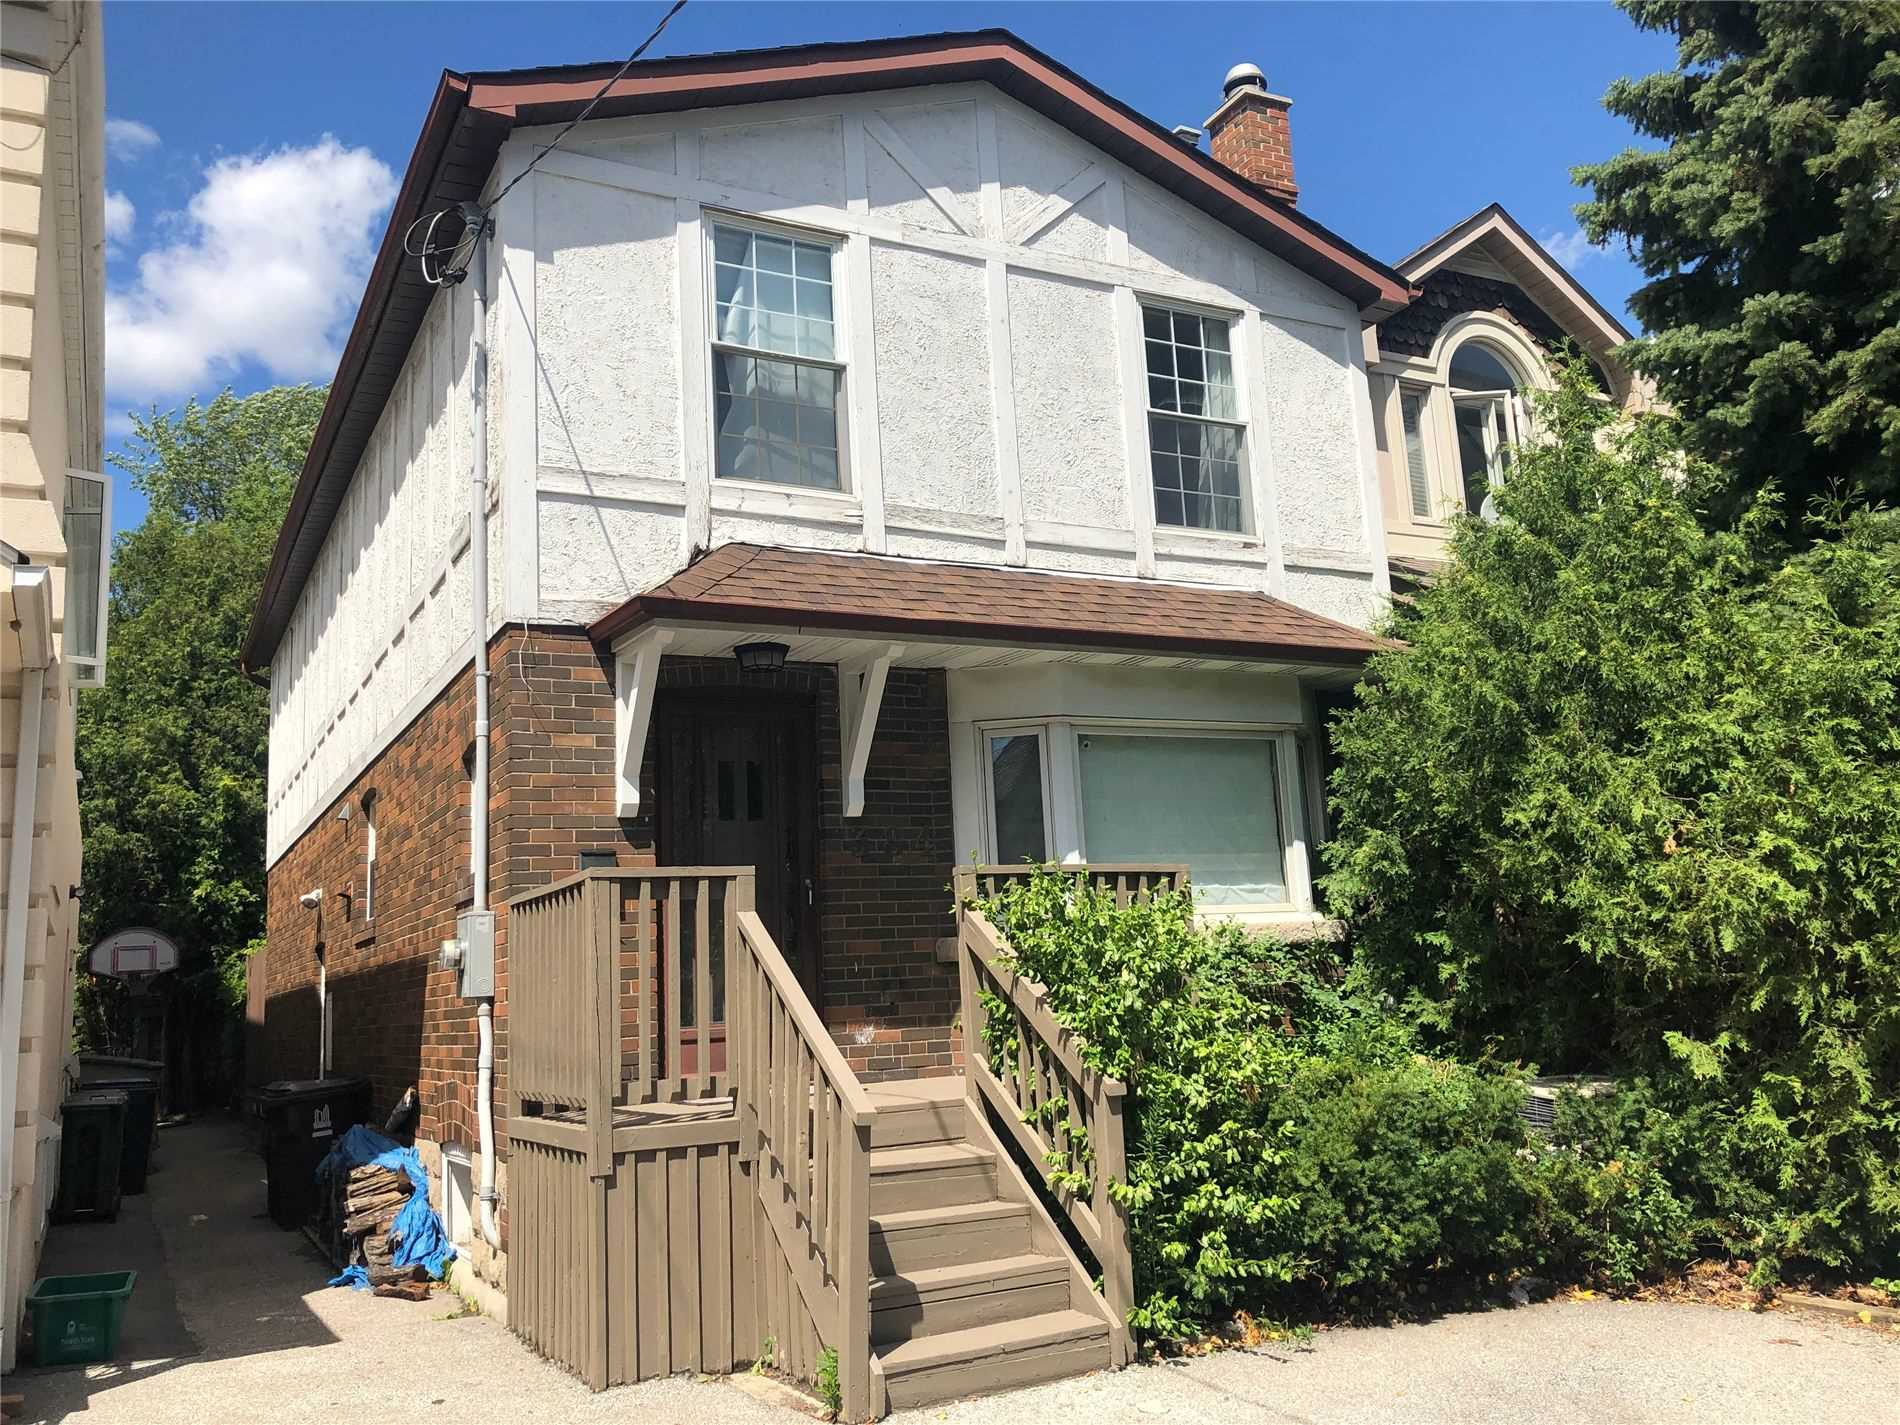 384 Fairlawn Ave, Toronto, Ontario M5M1T8, 3 Bedrooms Bedrooms, 7 Rooms Rooms,3 BathroomsBathrooms,Detached,For Sale,Fairlawn,C4856693